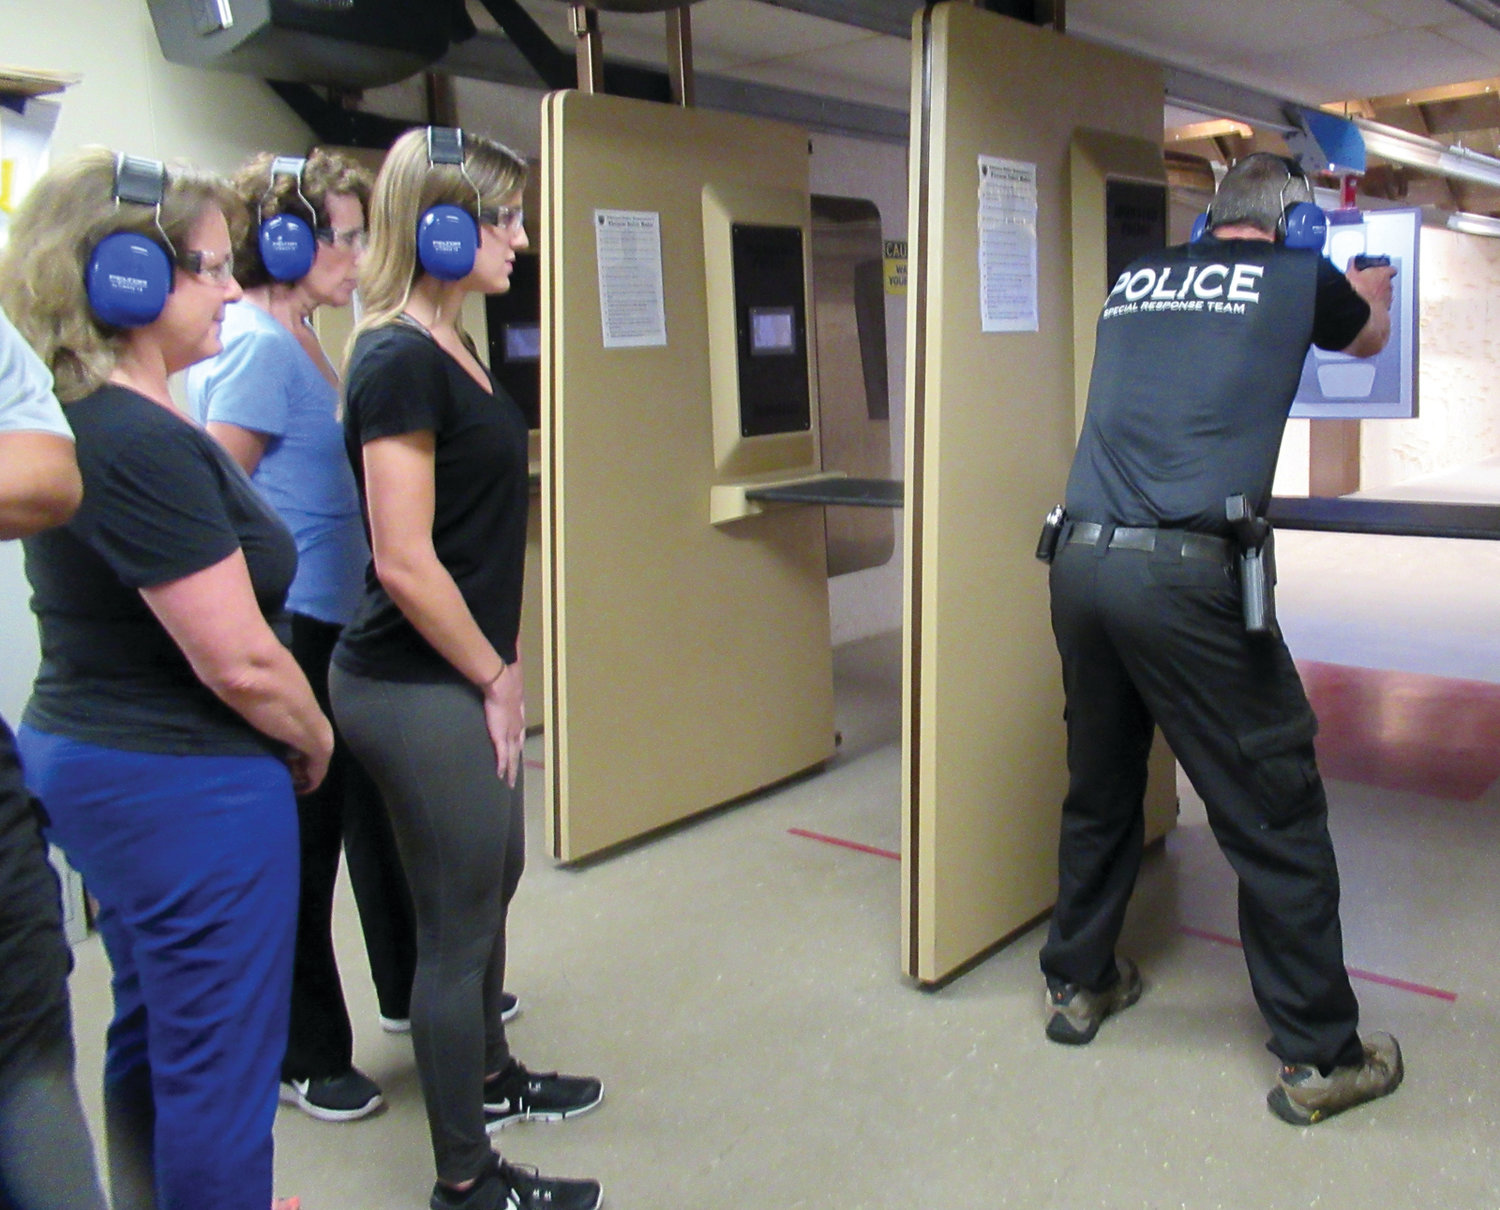 PERFECT POSITON: Det. Jim Seymour, the Johnston Police Department's shooting expert, demonstrates the proper position to participants in the Citizens Police Academy prior to last week's shooting practice in the downstairs range.